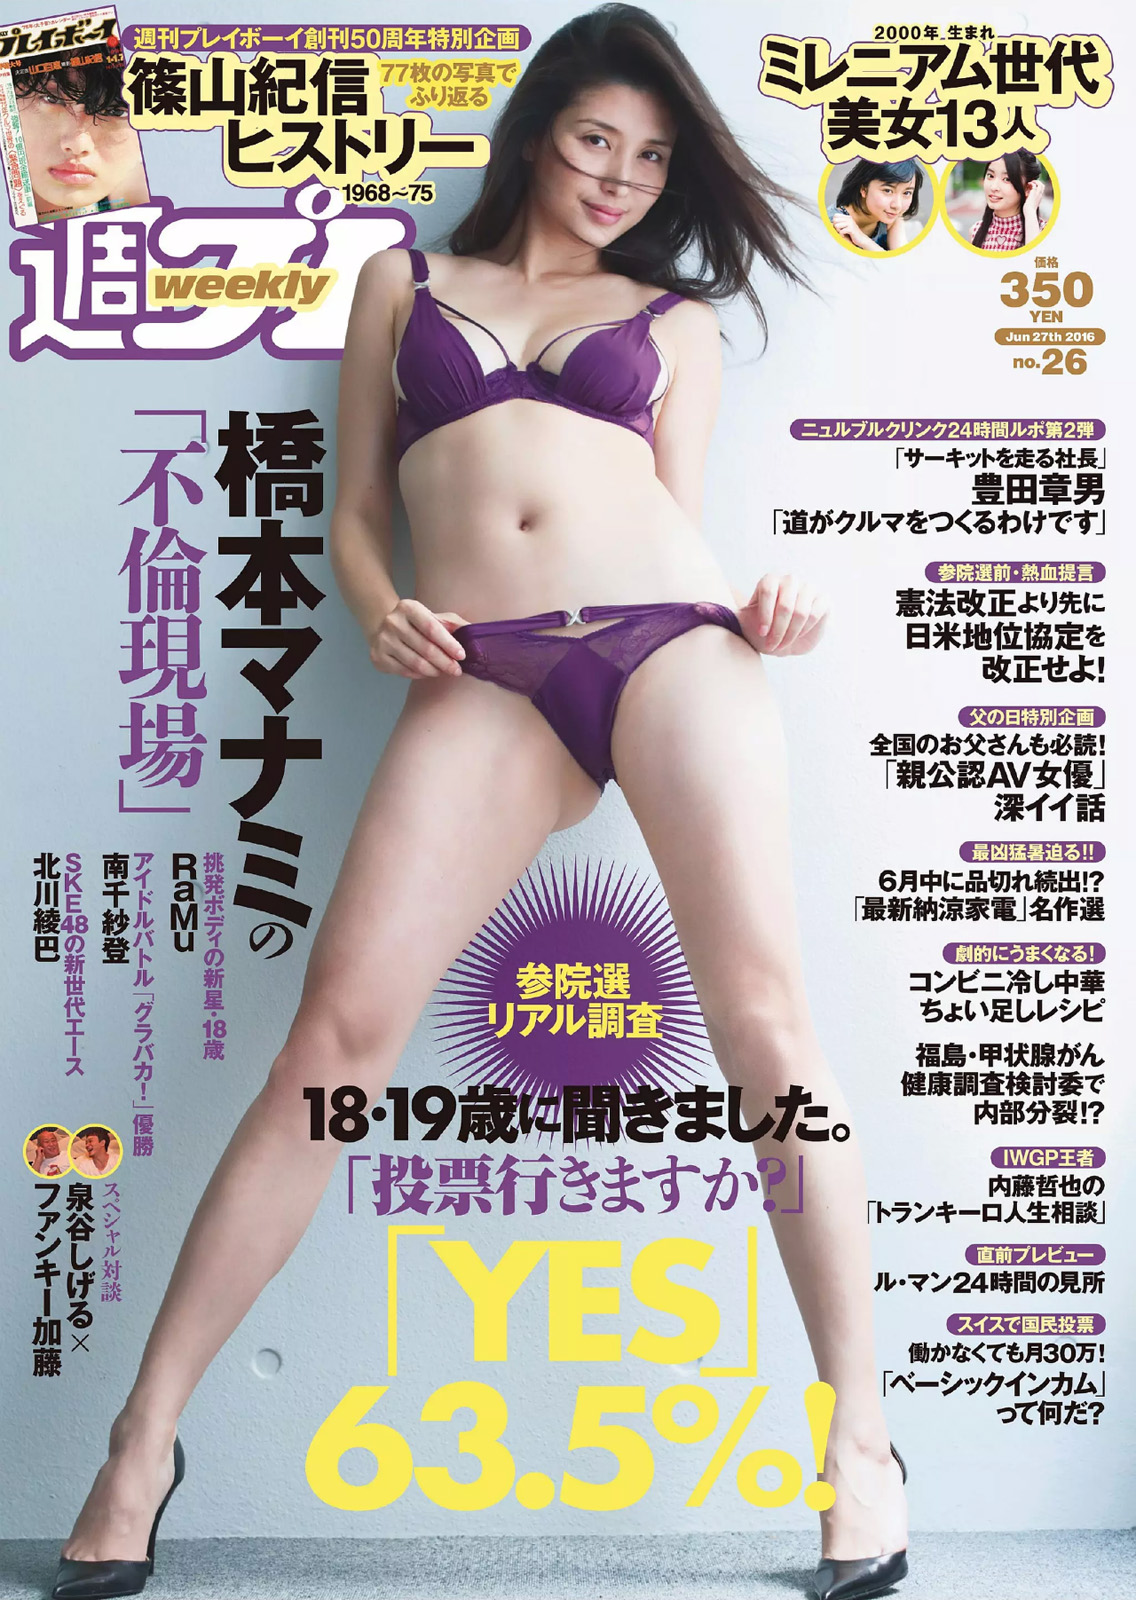 20170412.0203.1 Weekly Playboy (2016.26) 001 (JPOP.ru).jpg